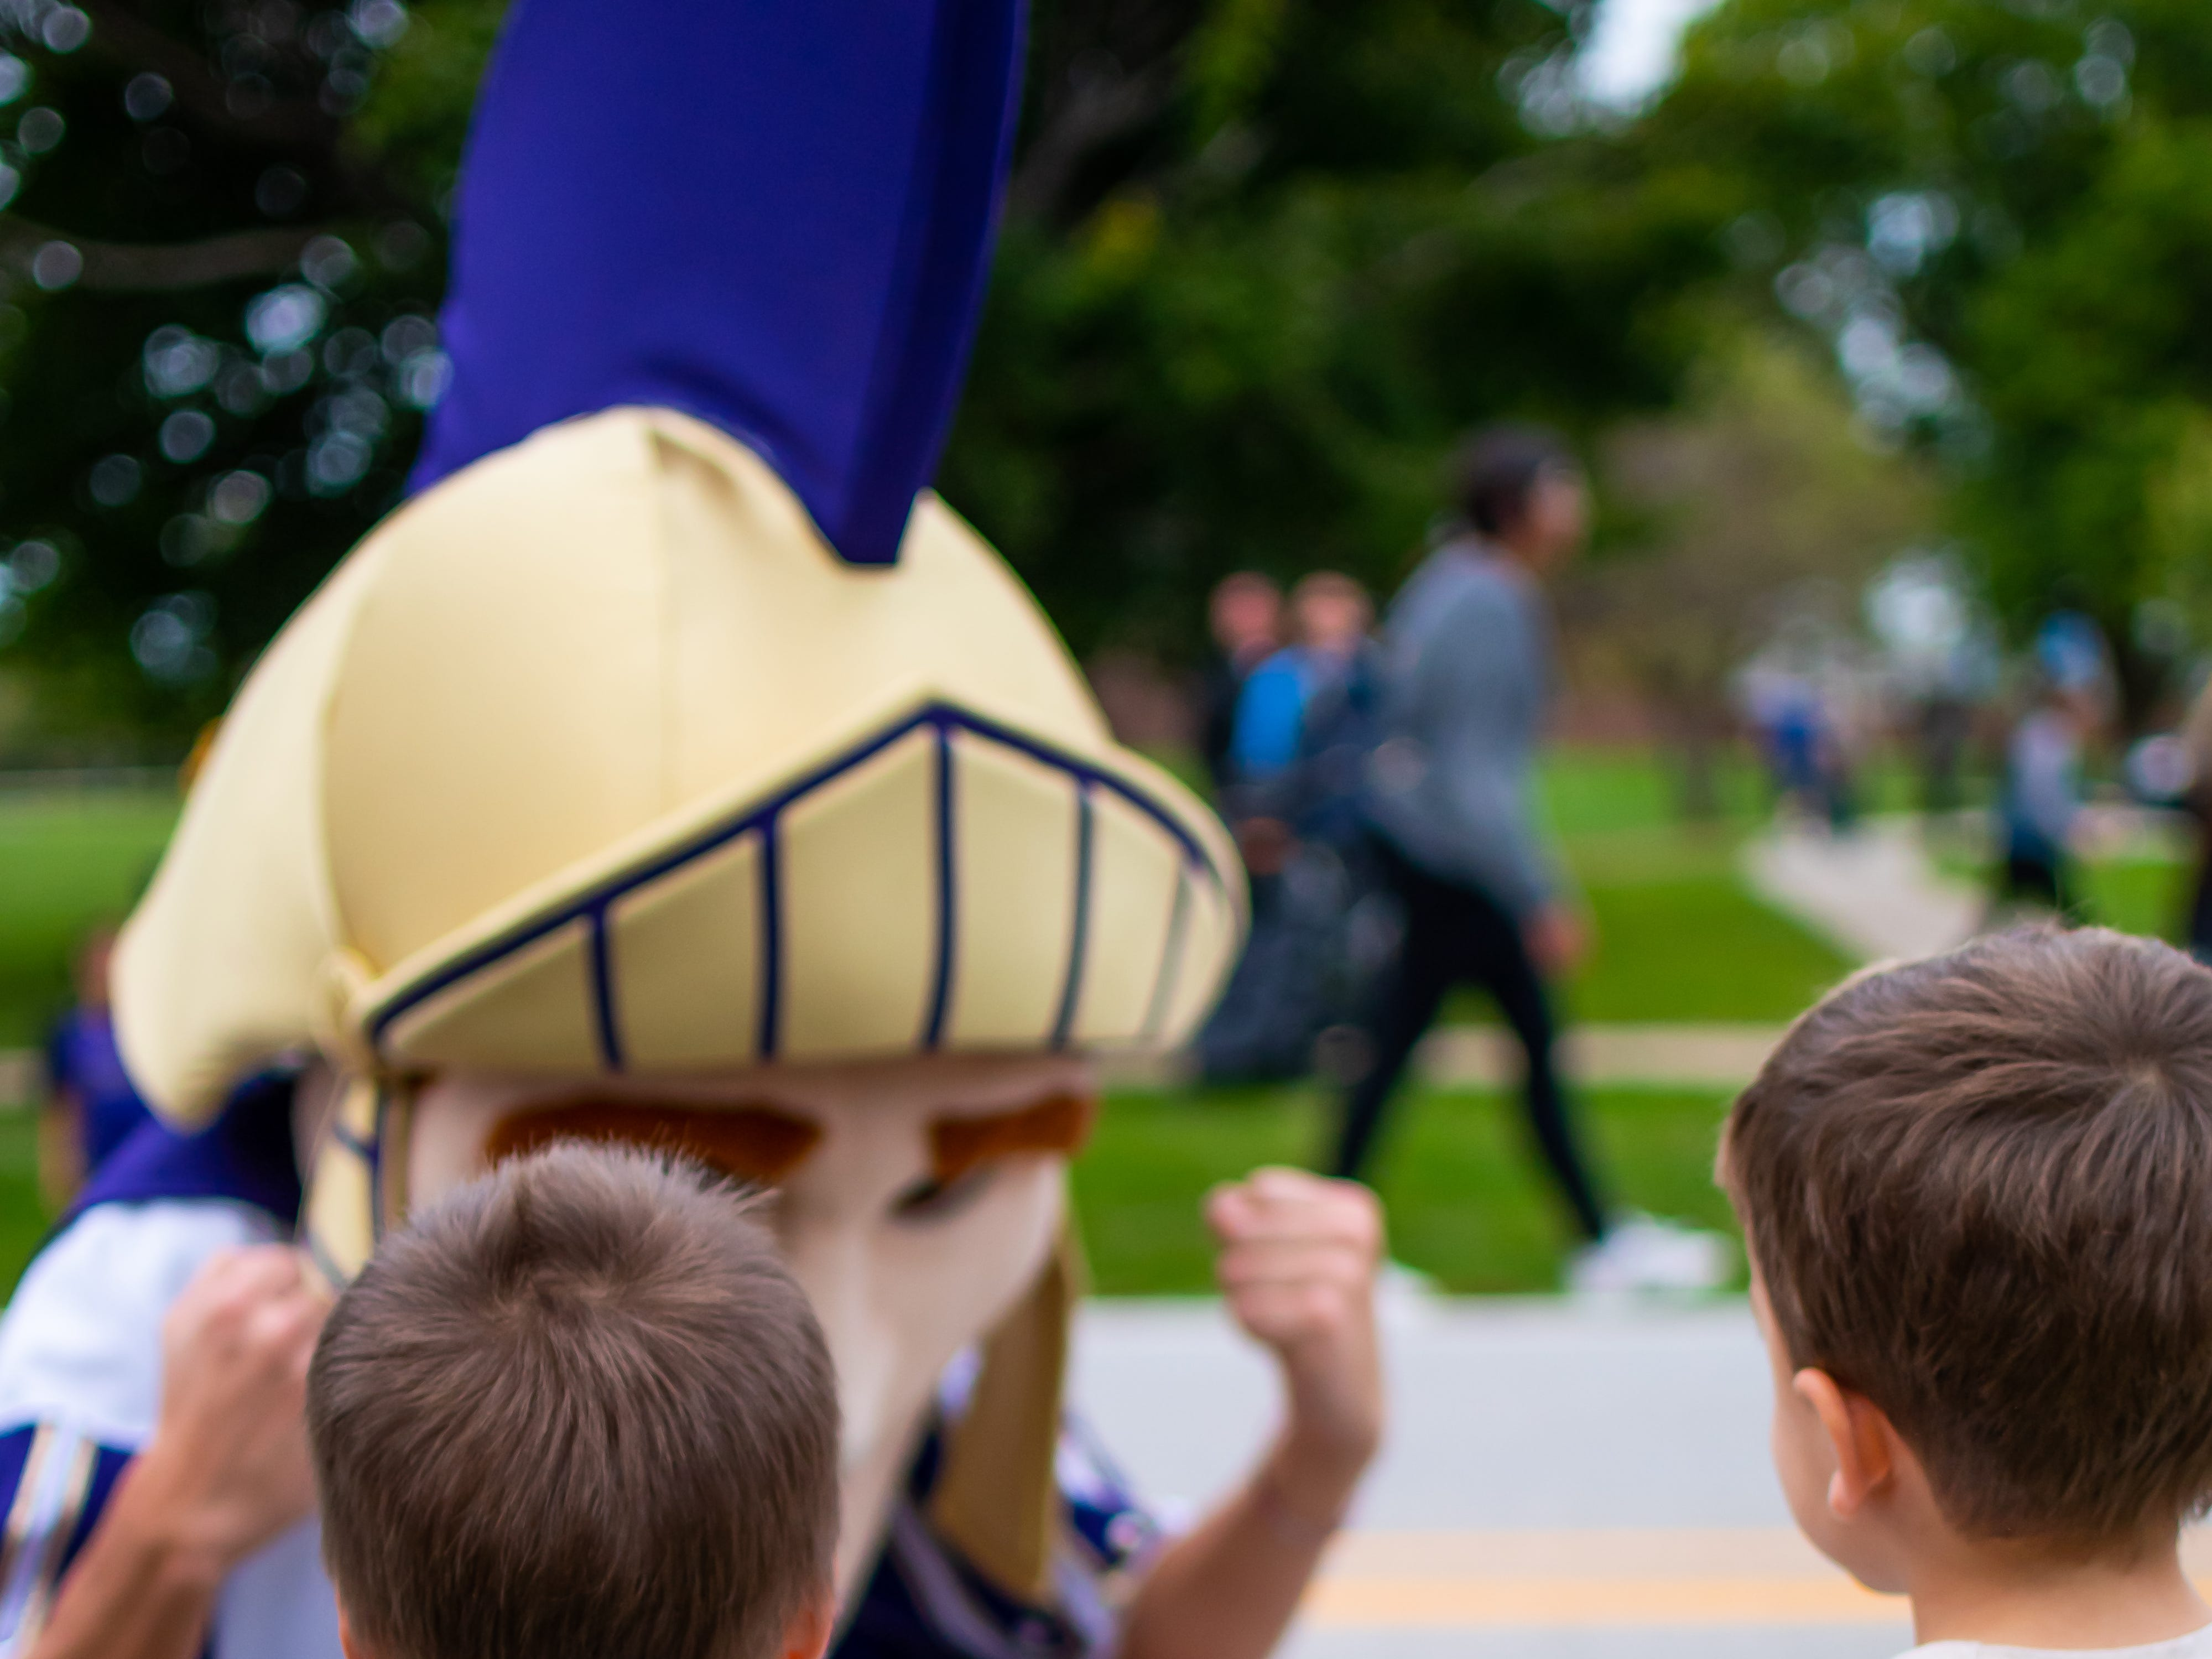 Brooks, 3, and Beckett Keenan, 3, both of Waukee give high fives to the Waukee mascot at the Waukee Homecoming Parade on Thursday, September 27, 2018 in Waukee.